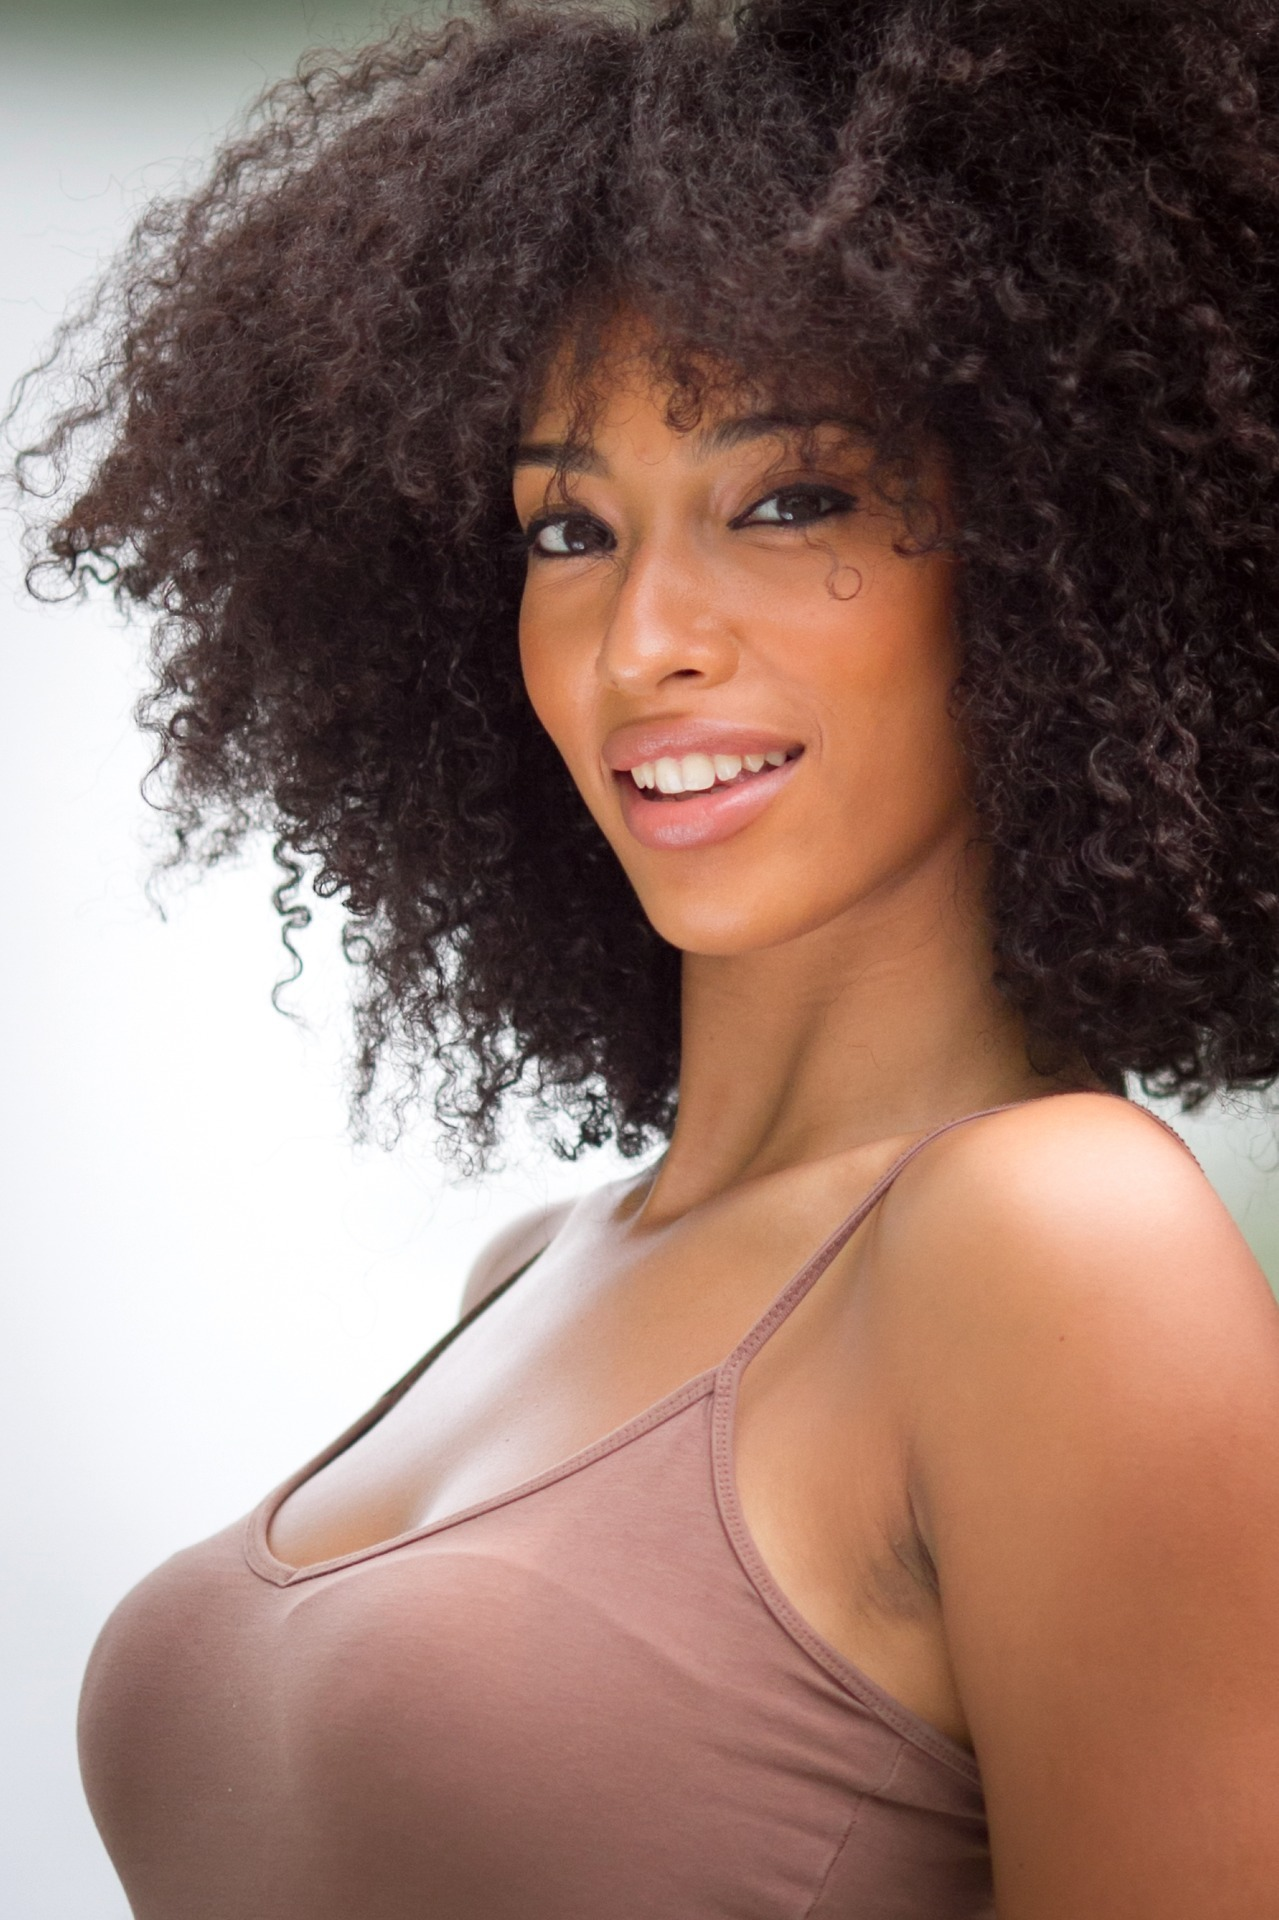 Mulatto black girls in bridgeton nj — 9